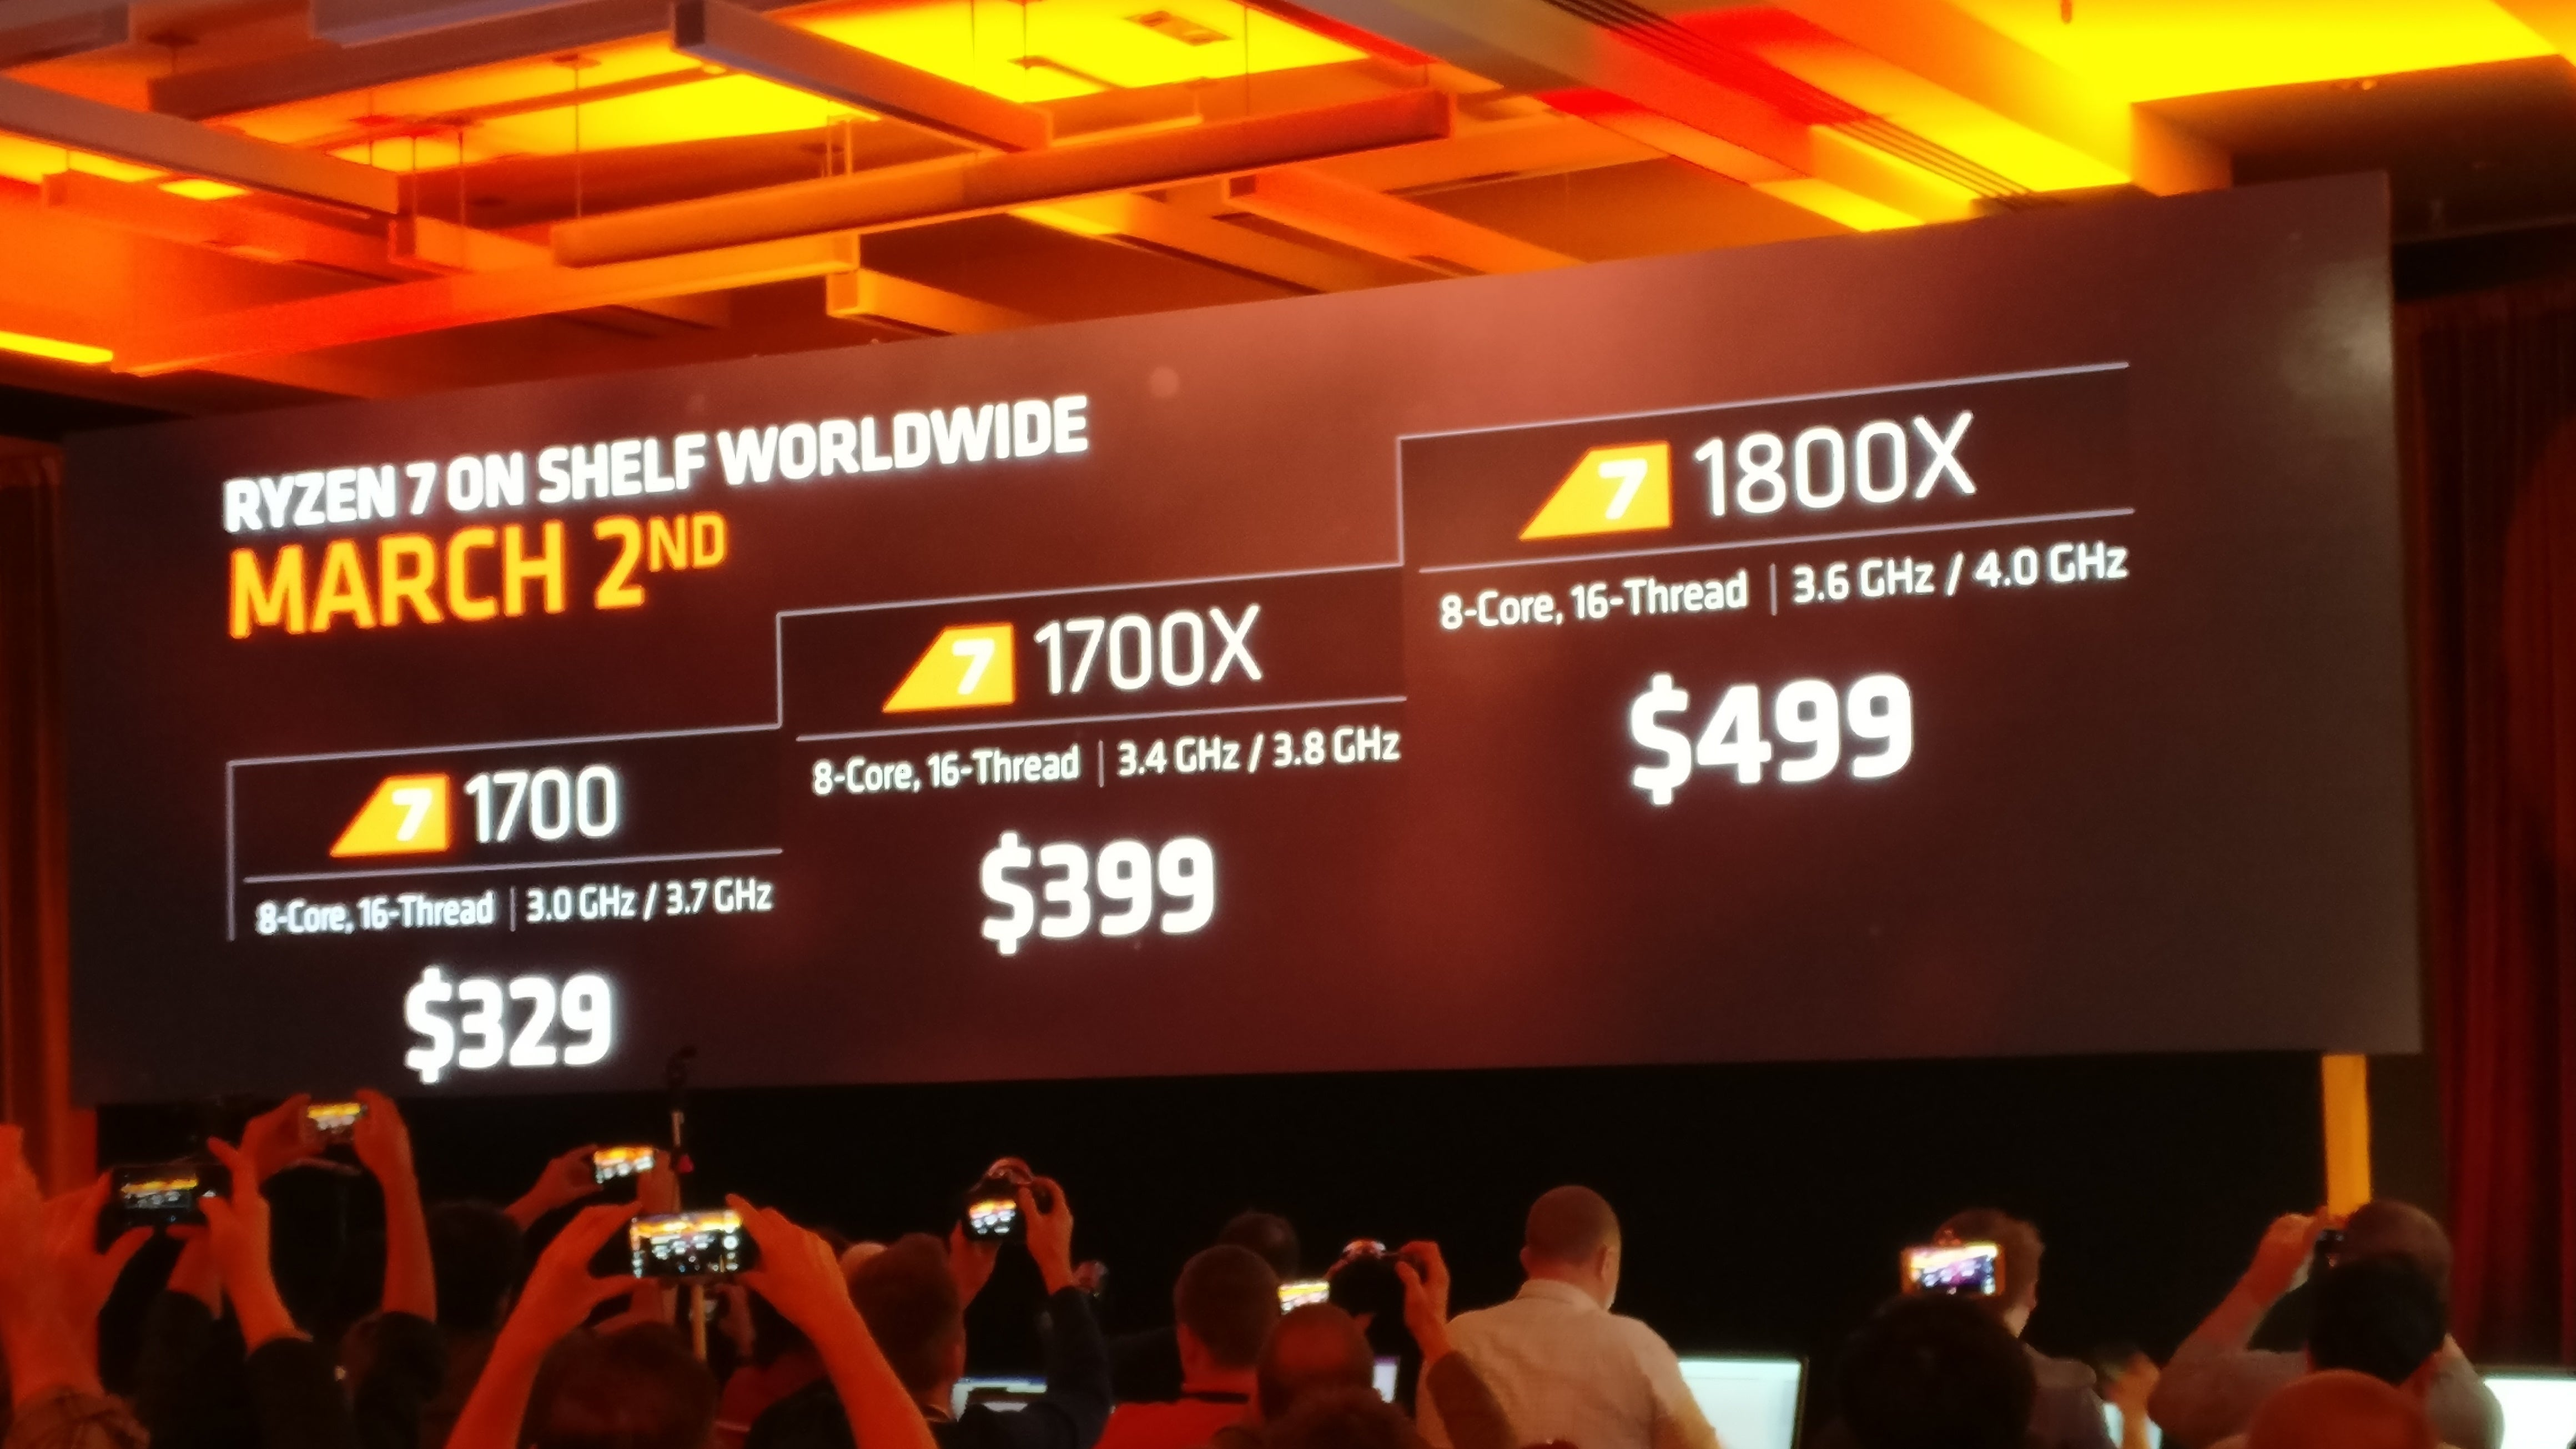 Amd Ryzen 5 Cpus Announced From 169 How To Tune A Ryzen System And - Amd ryzen 7 prices